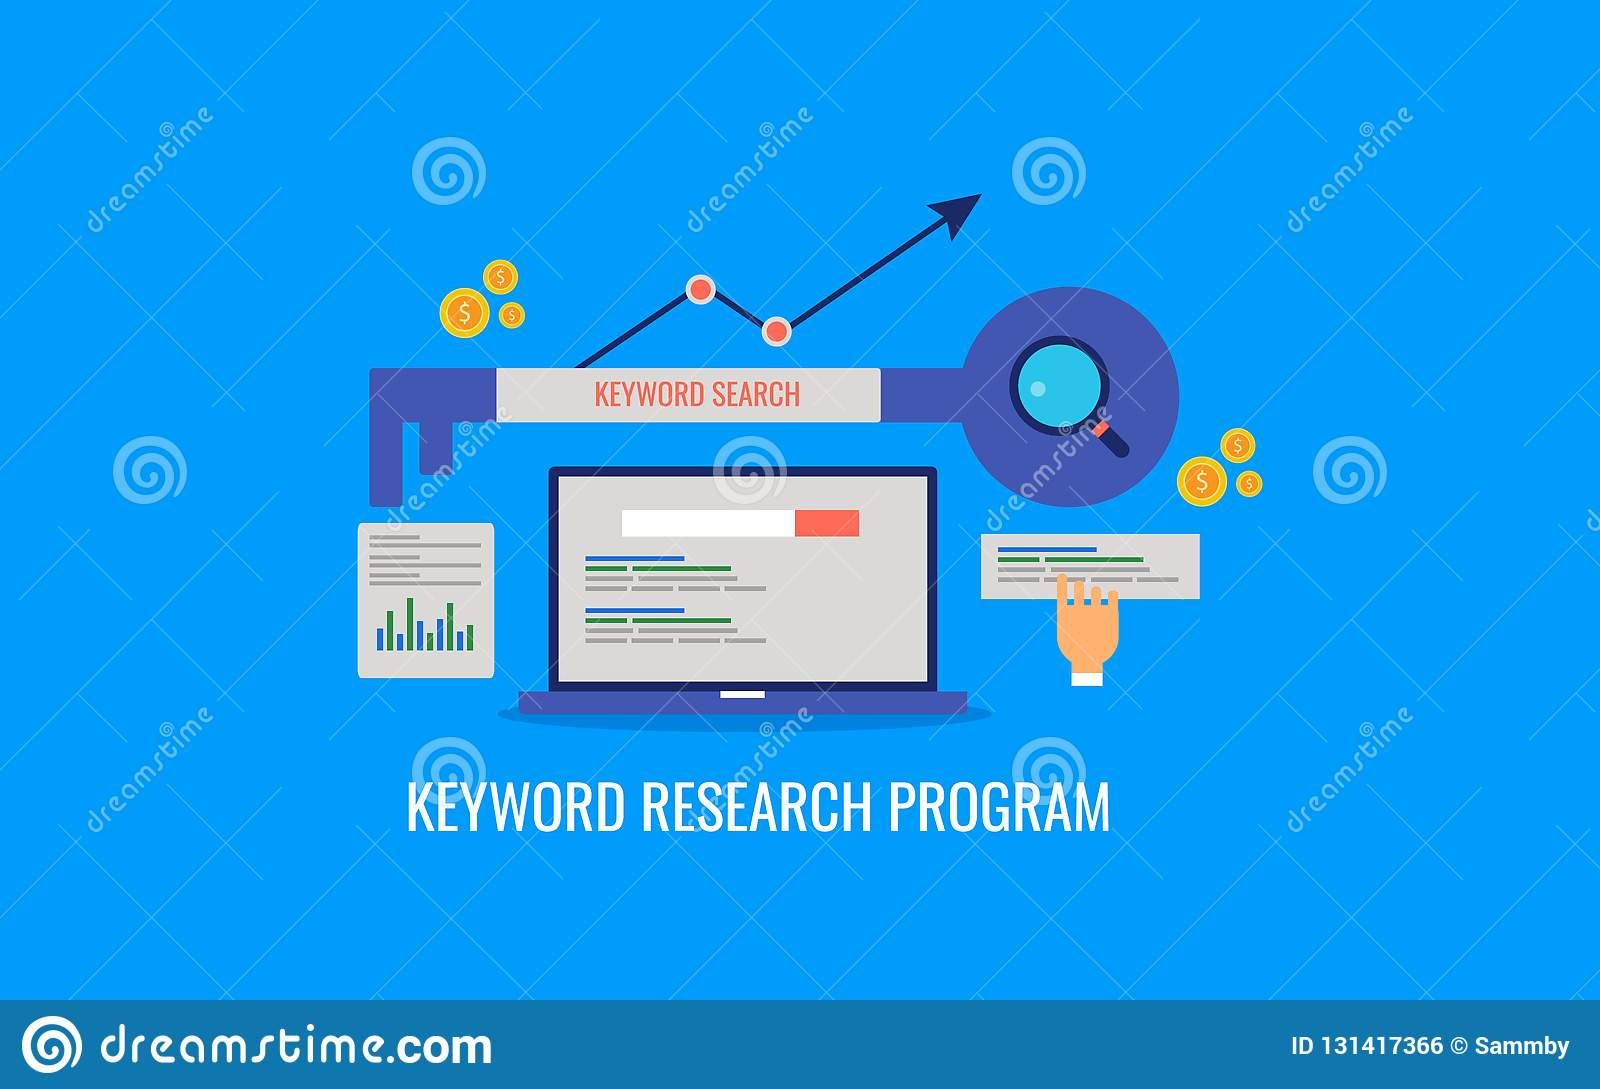 Keyword research program, search engine optimization, seo ranking, data analysis. Flat design vector banner.